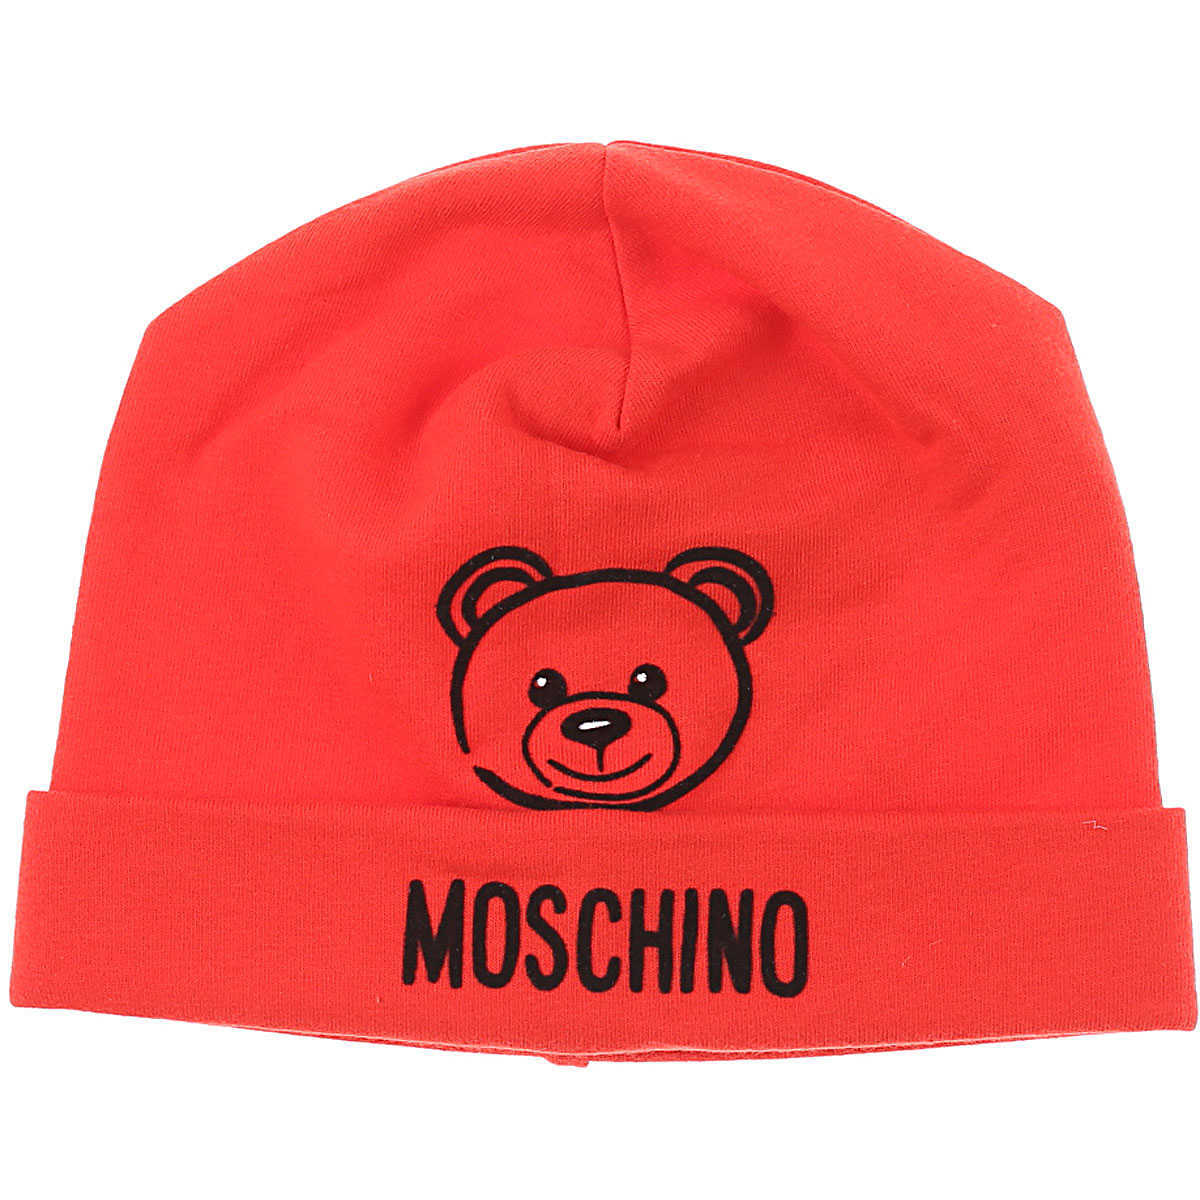 Moschino Baby Hats for Boys Red UK - GOOFASH - Mens HATS